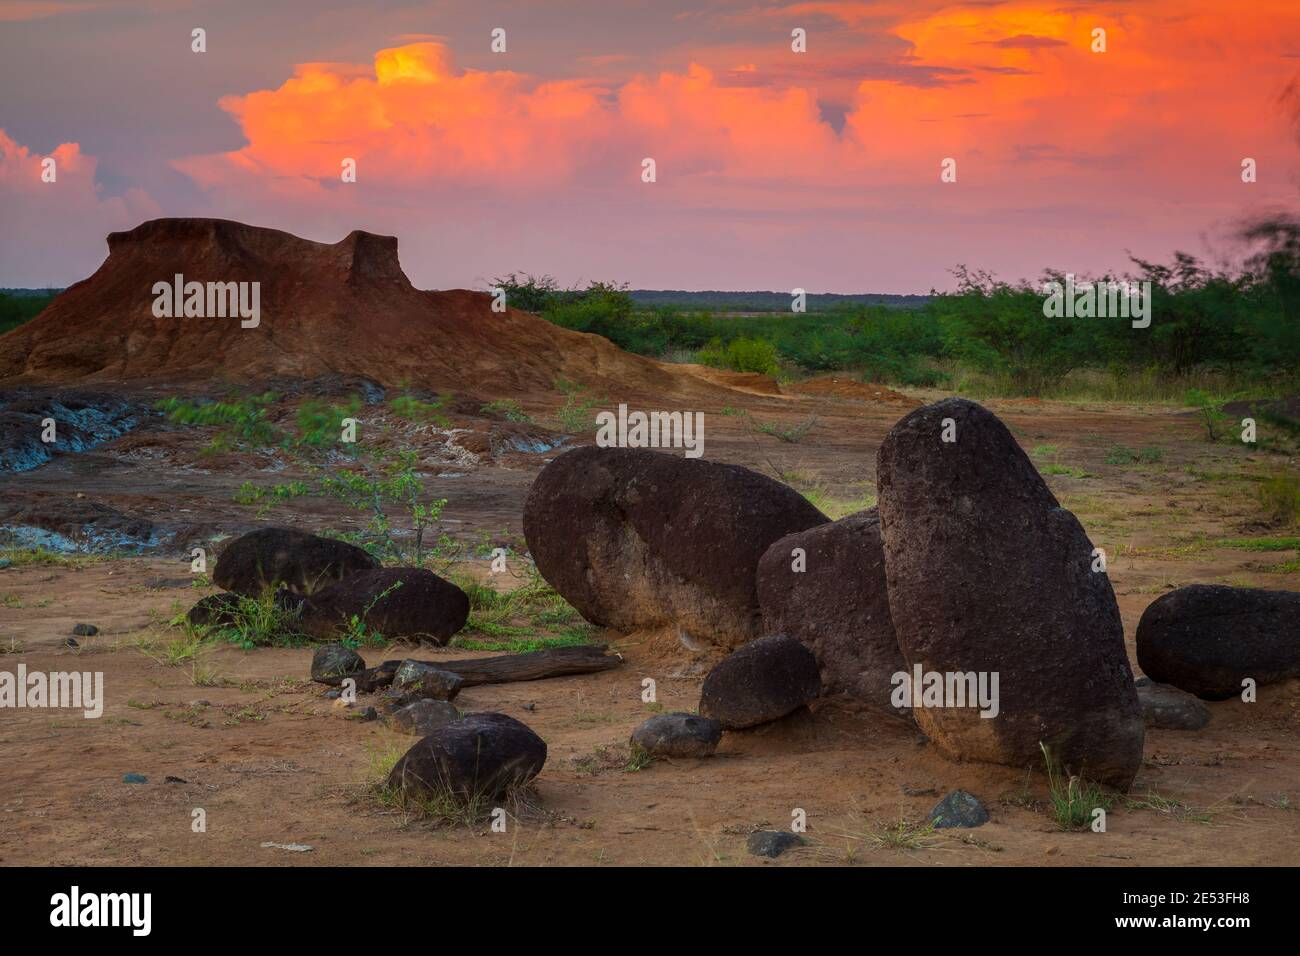 Colorful evening in the desert of Sarigua national park, Herrera province, Republic of Panama. Stock Photo